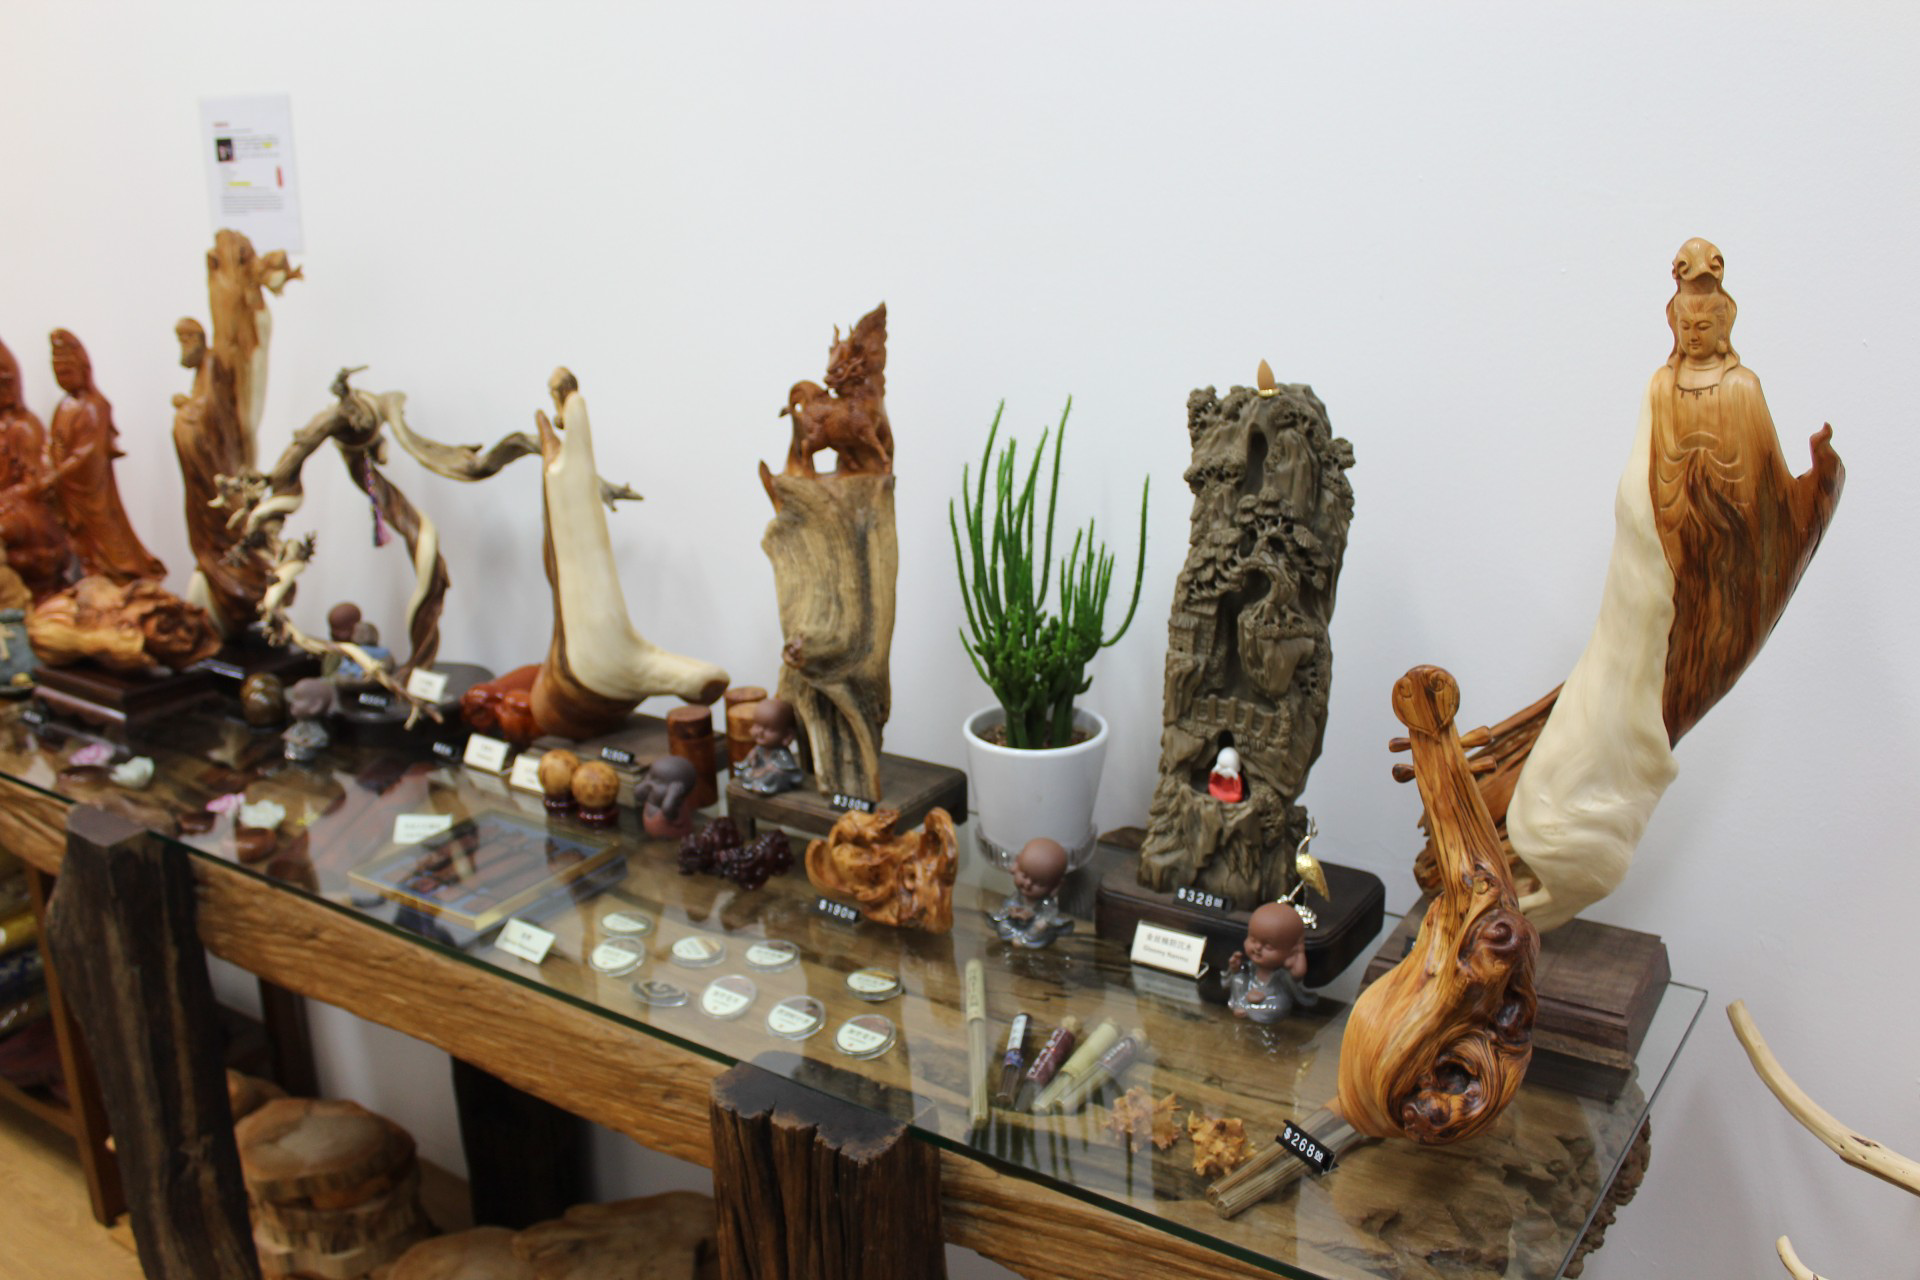 Wooden statuettes on display in Qimu Arts